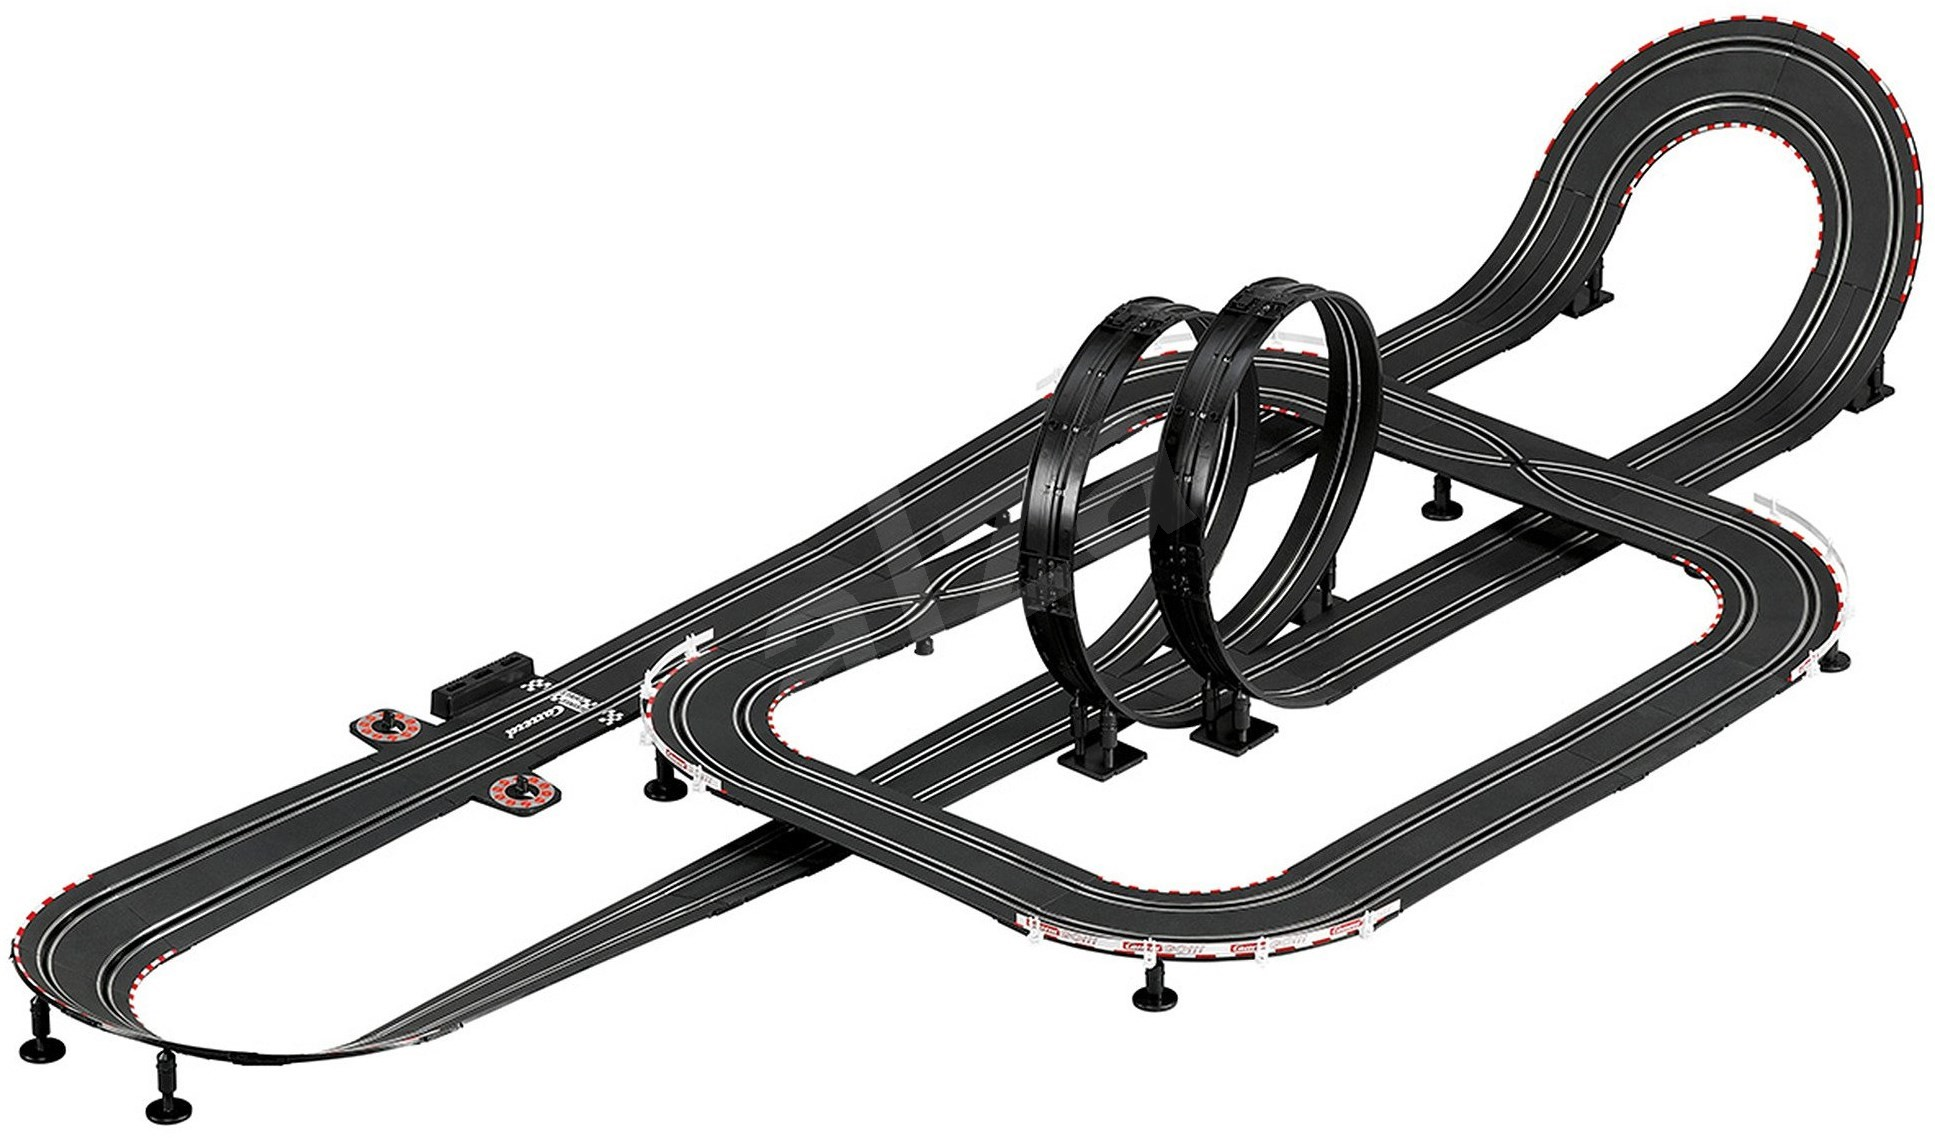 carrera go hot lap slot car track. Black Bedroom Furniture Sets. Home Design Ideas